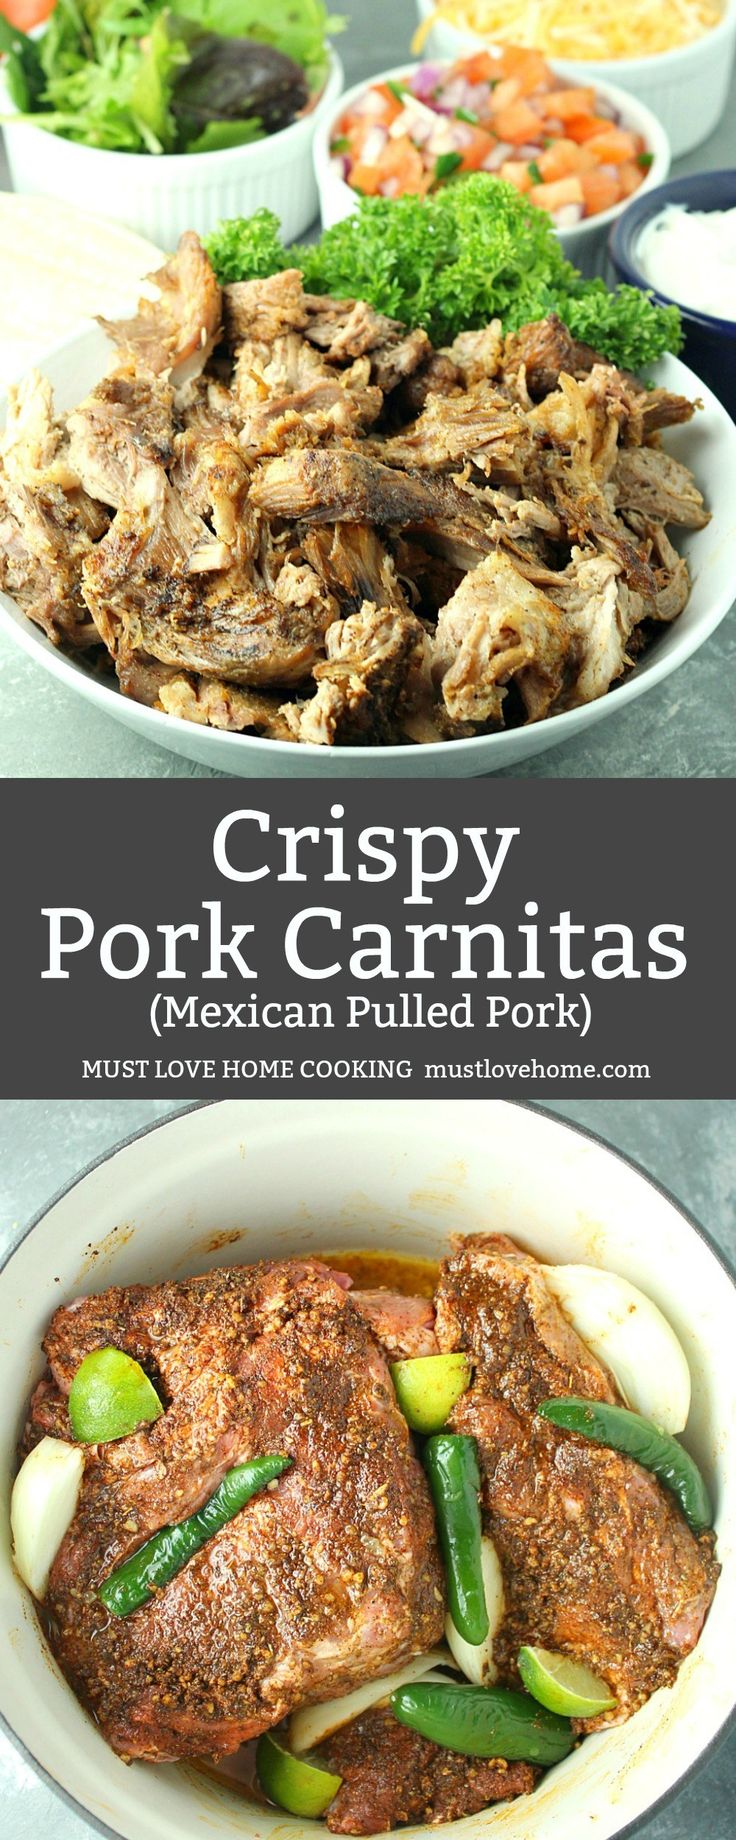 Crispy Pork Carnitas are Dutch oven baked low and slow until fall-apart delicious. So delicious when finished under the broiler to caramelize and crisp. #dinner #mexicanrecipes #recipes #cook #pork #onthetable